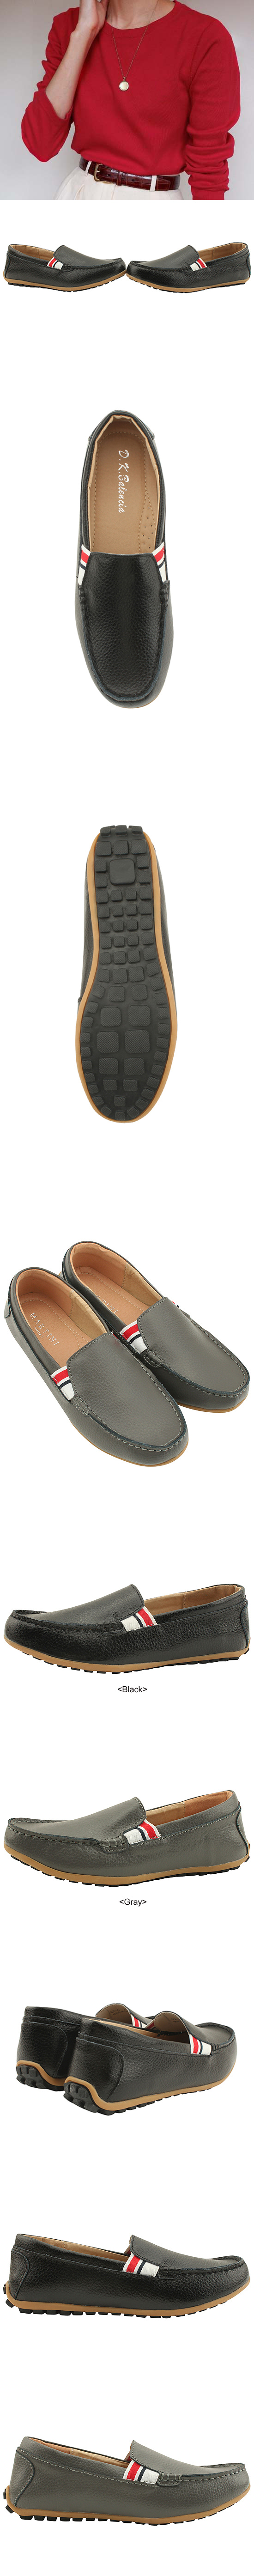 Cowhide Banding Driving Loafers Gray